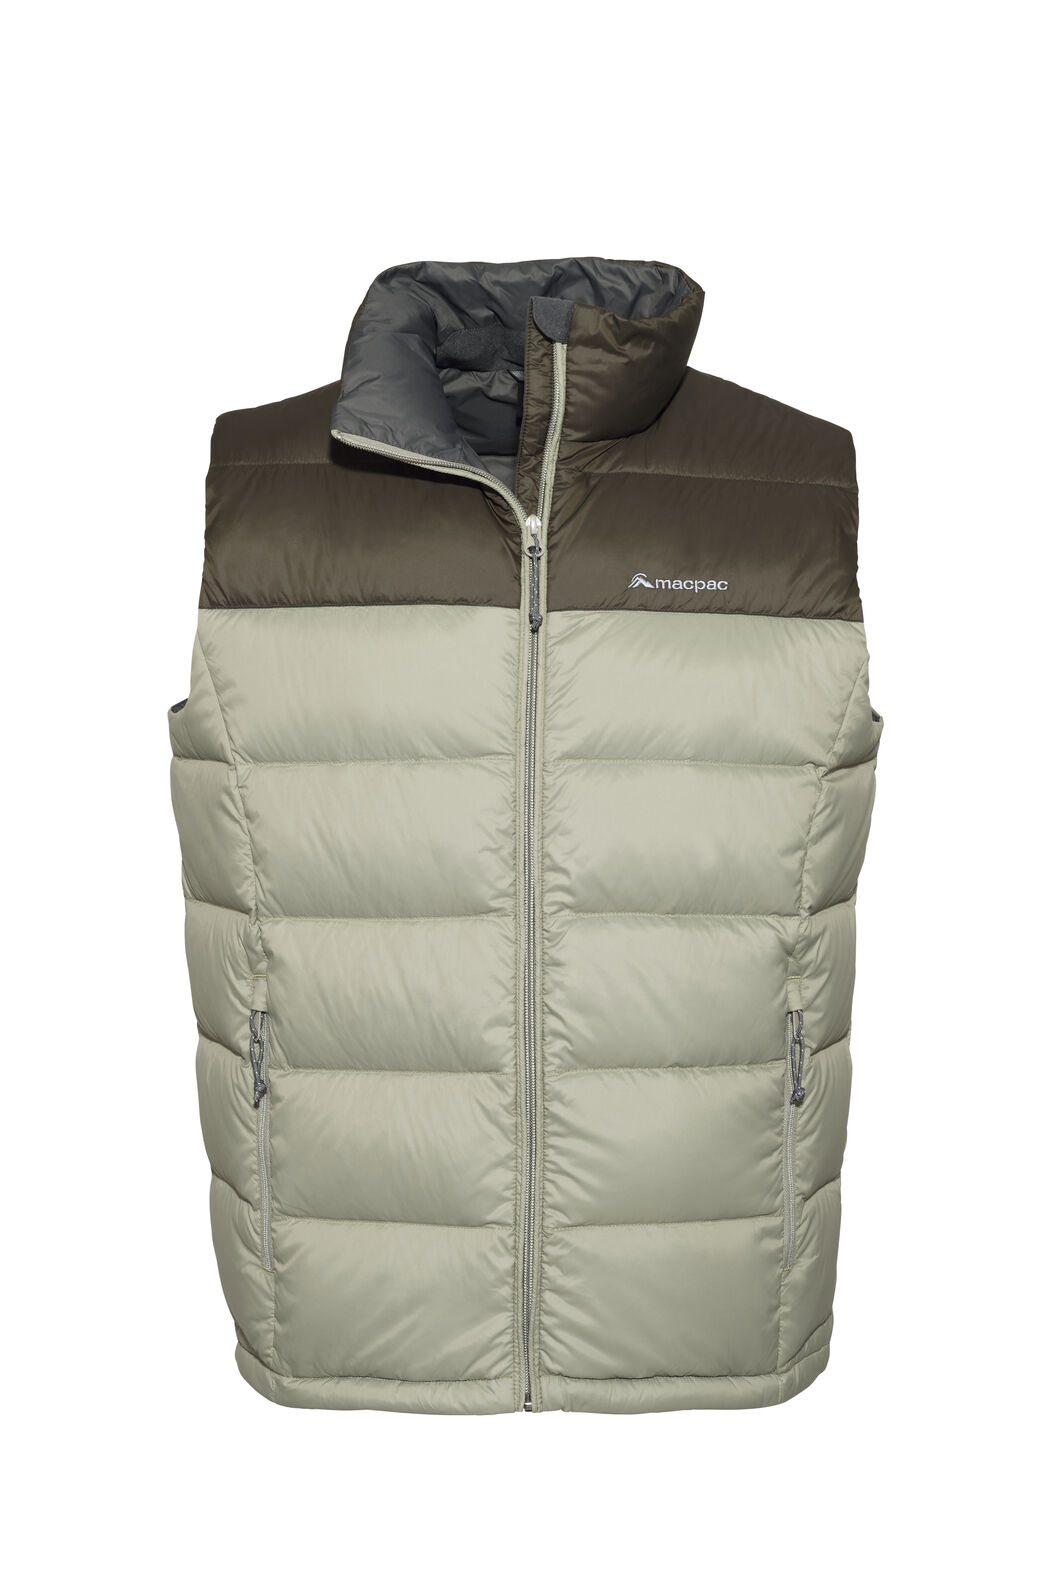 Macpac Halo Down Vest - Men's, Black Olive/Vetiver, hi-res